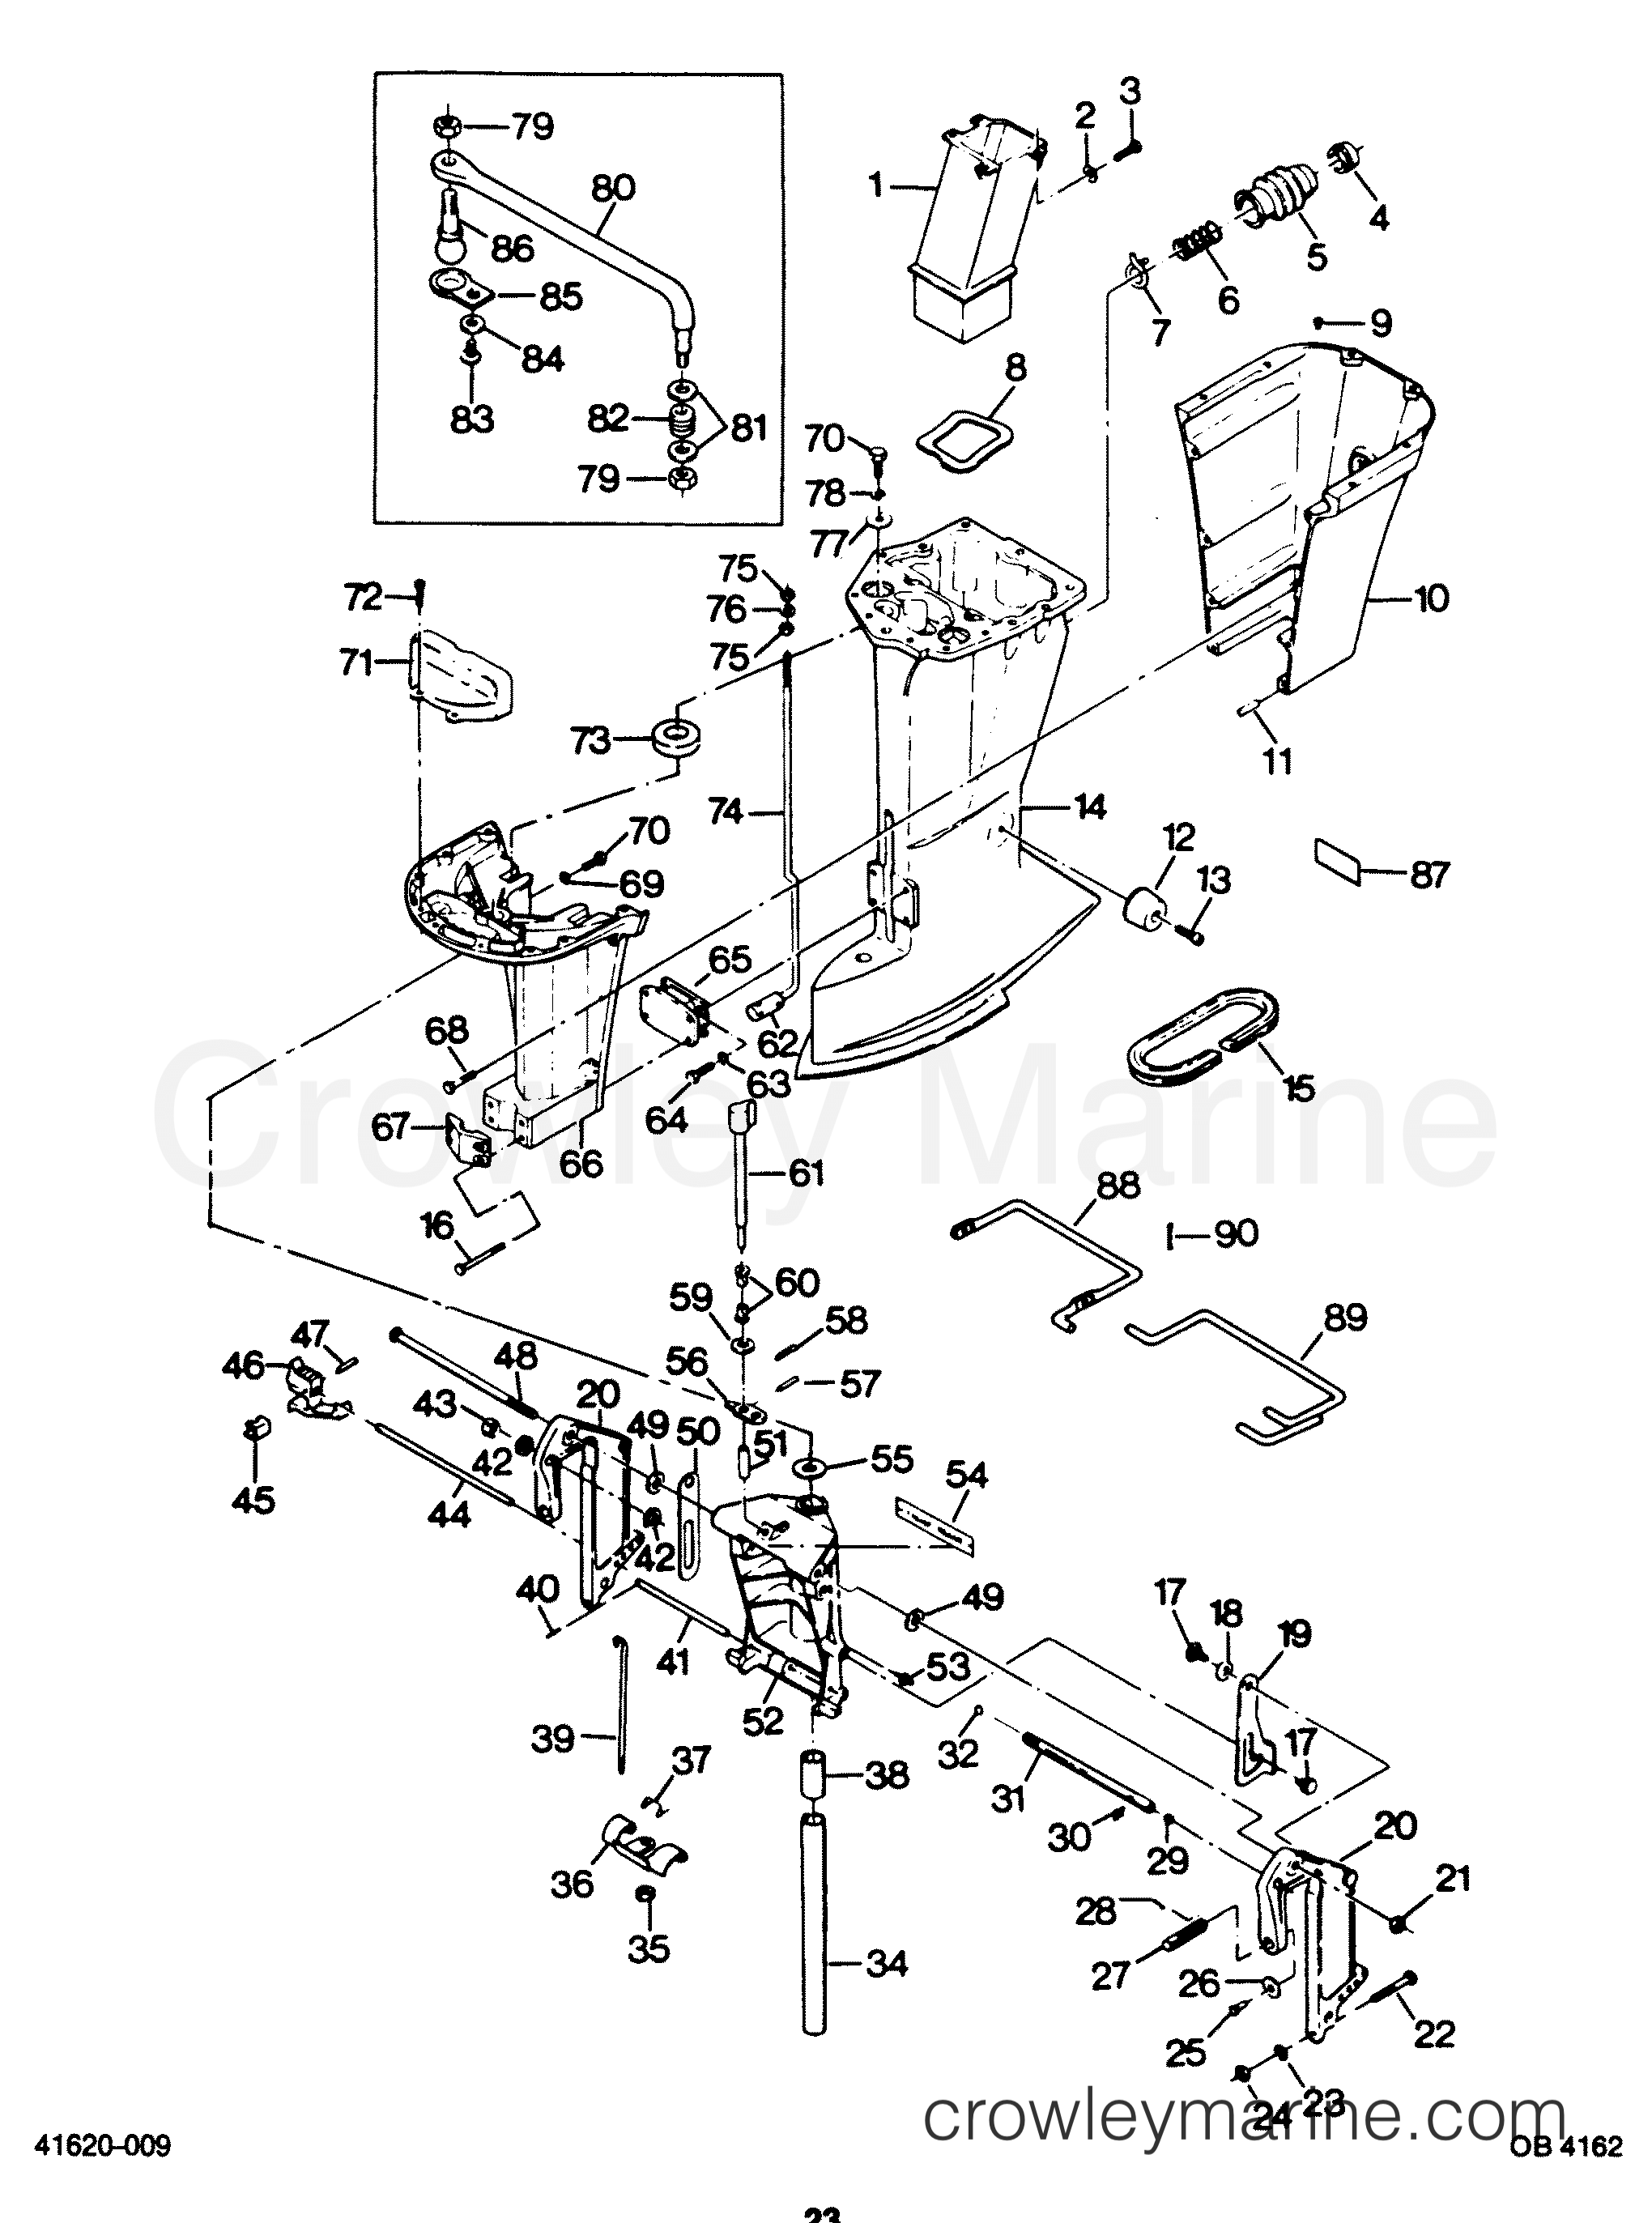 Diagram Of 1987 Force Outboard H0856c87b Motor Leg Diagram And Parts